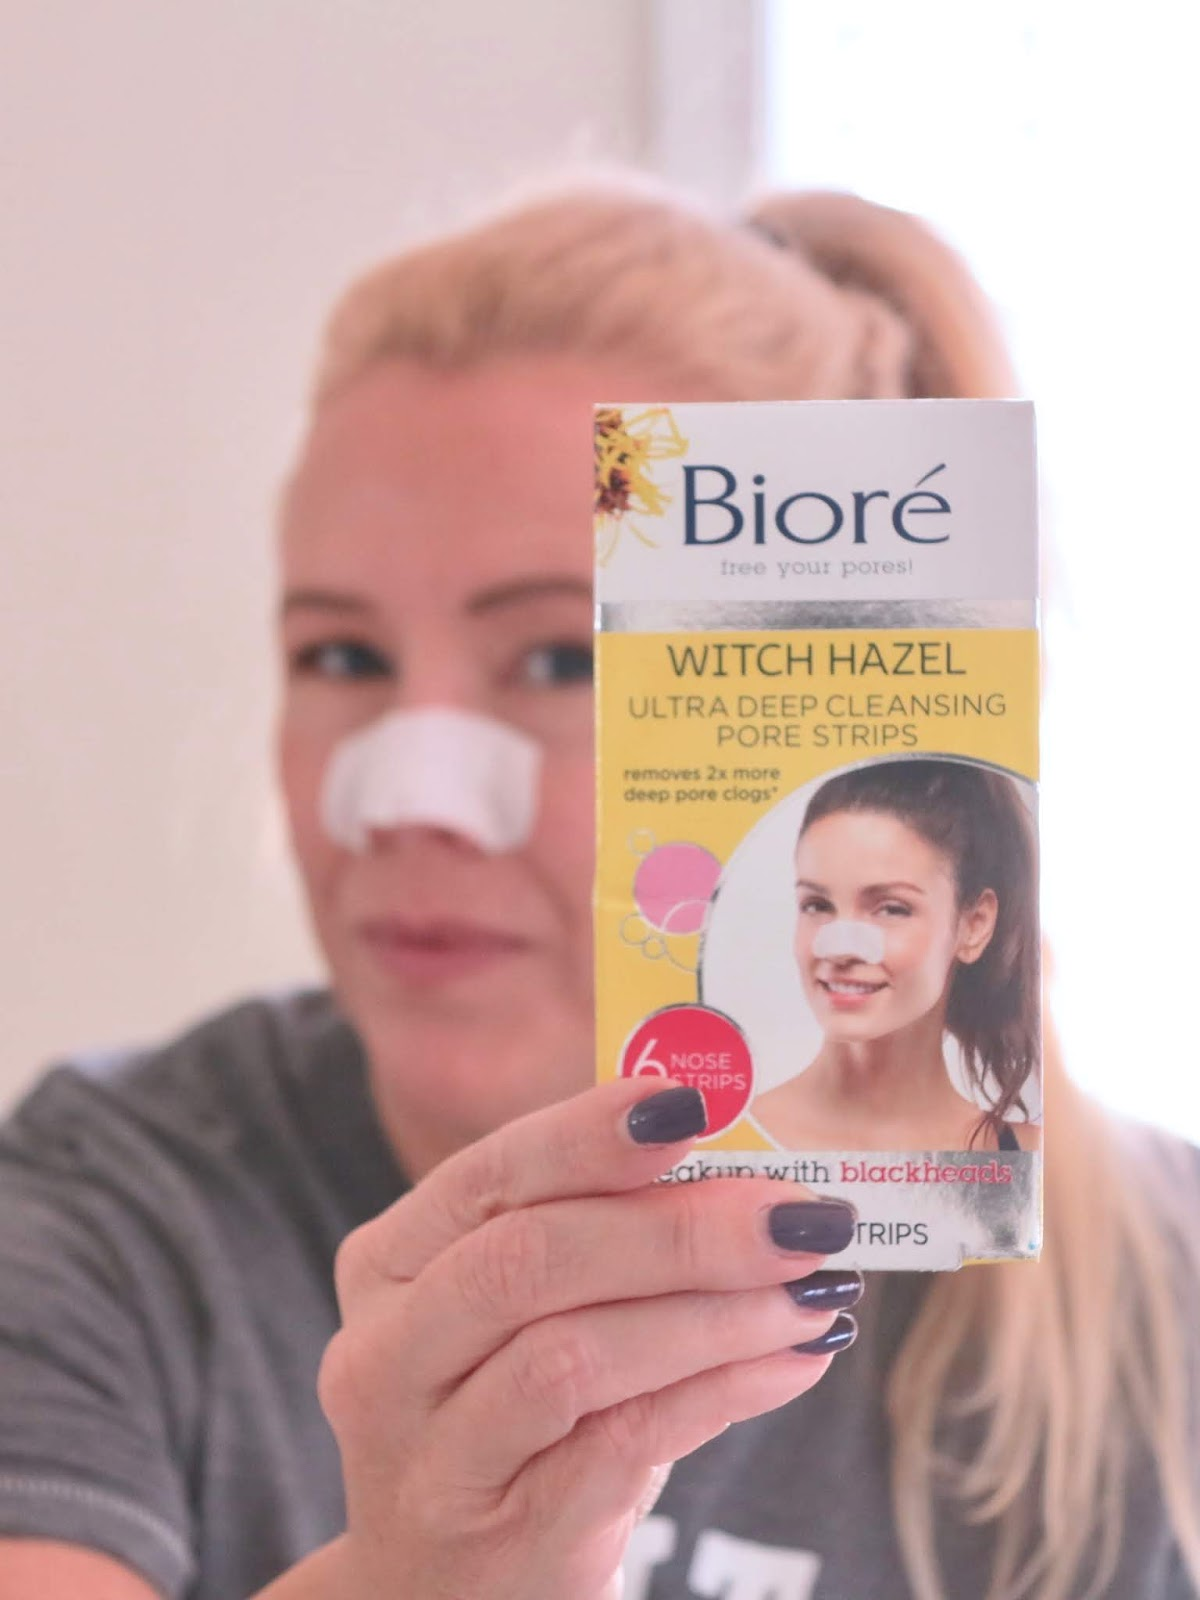 How to get rid of the strawberry nose! #BioreWitchHazel #ad